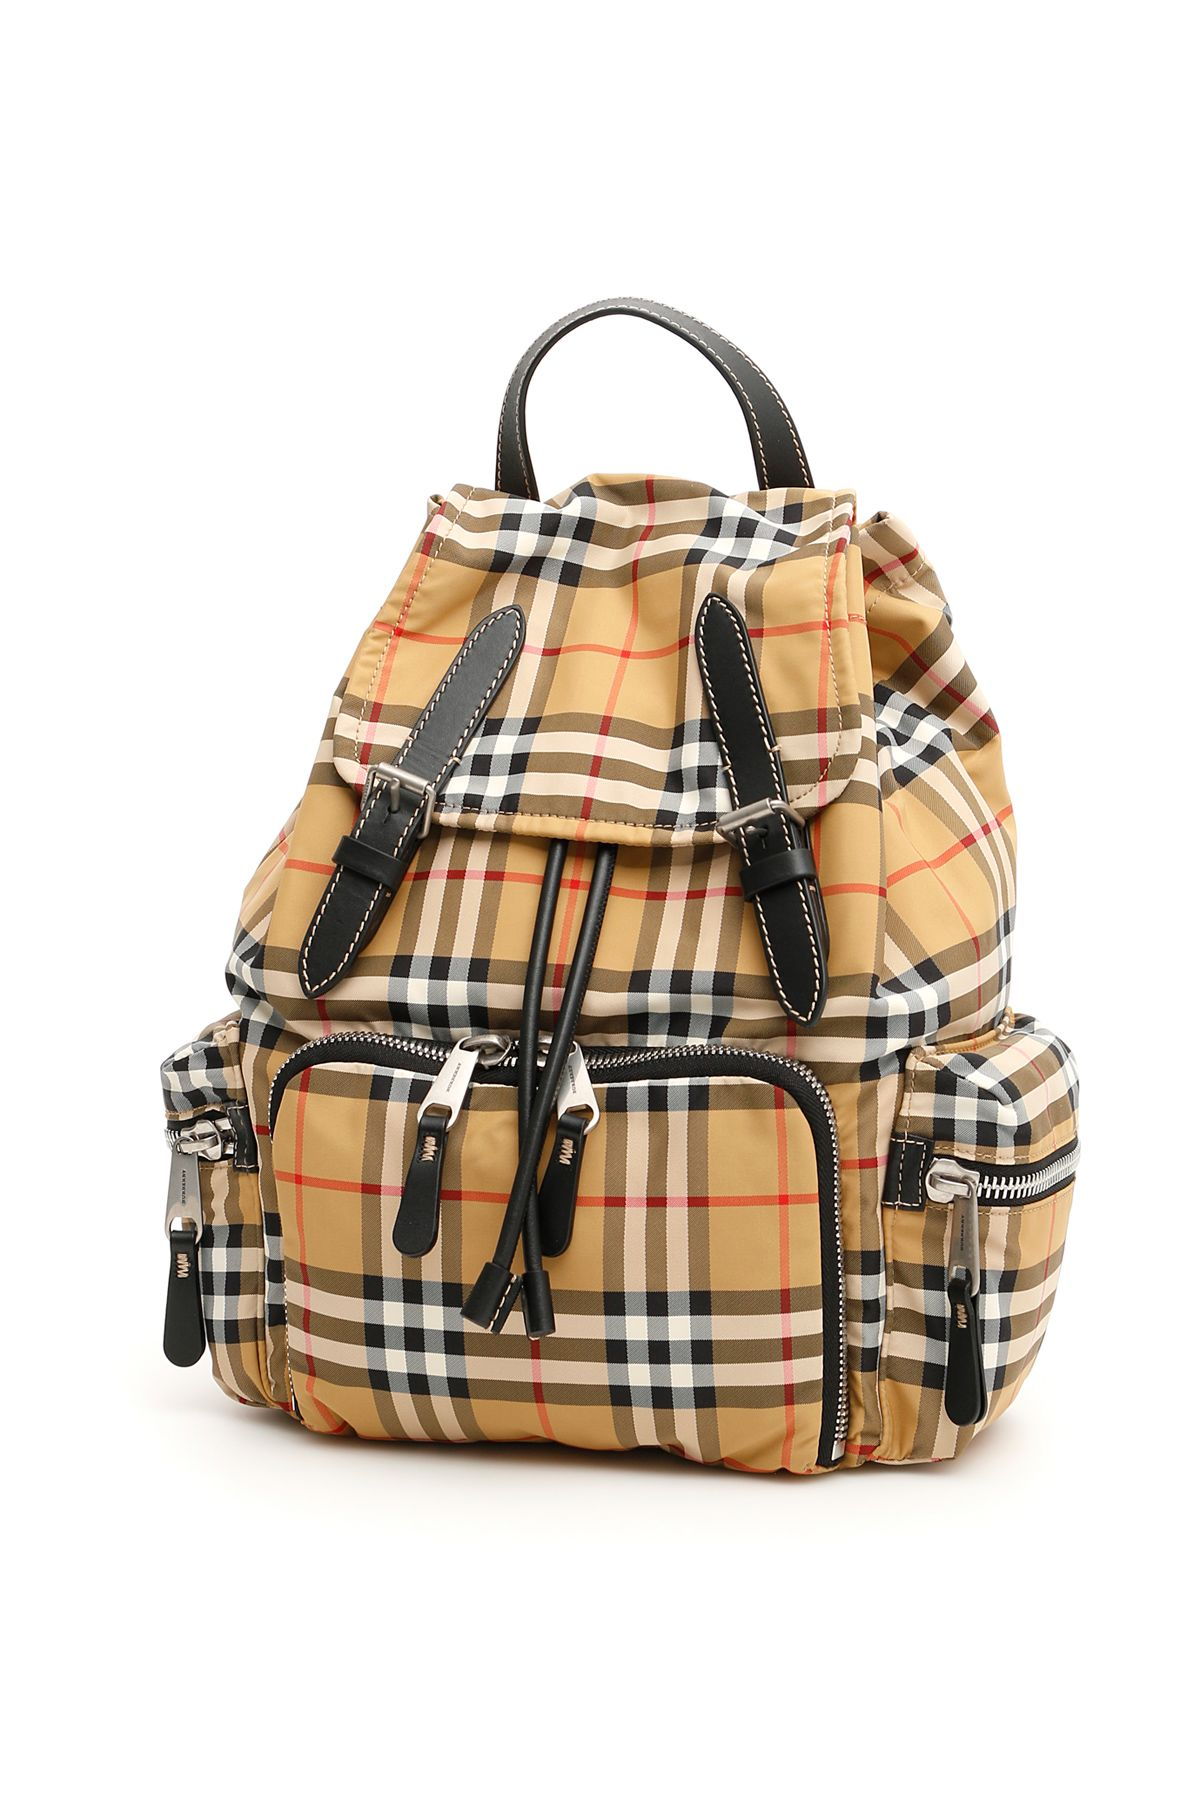 a38a26214 Burberry Medium Rucksack In Vintage Check In Antique Yellow|Beige | ModeSens